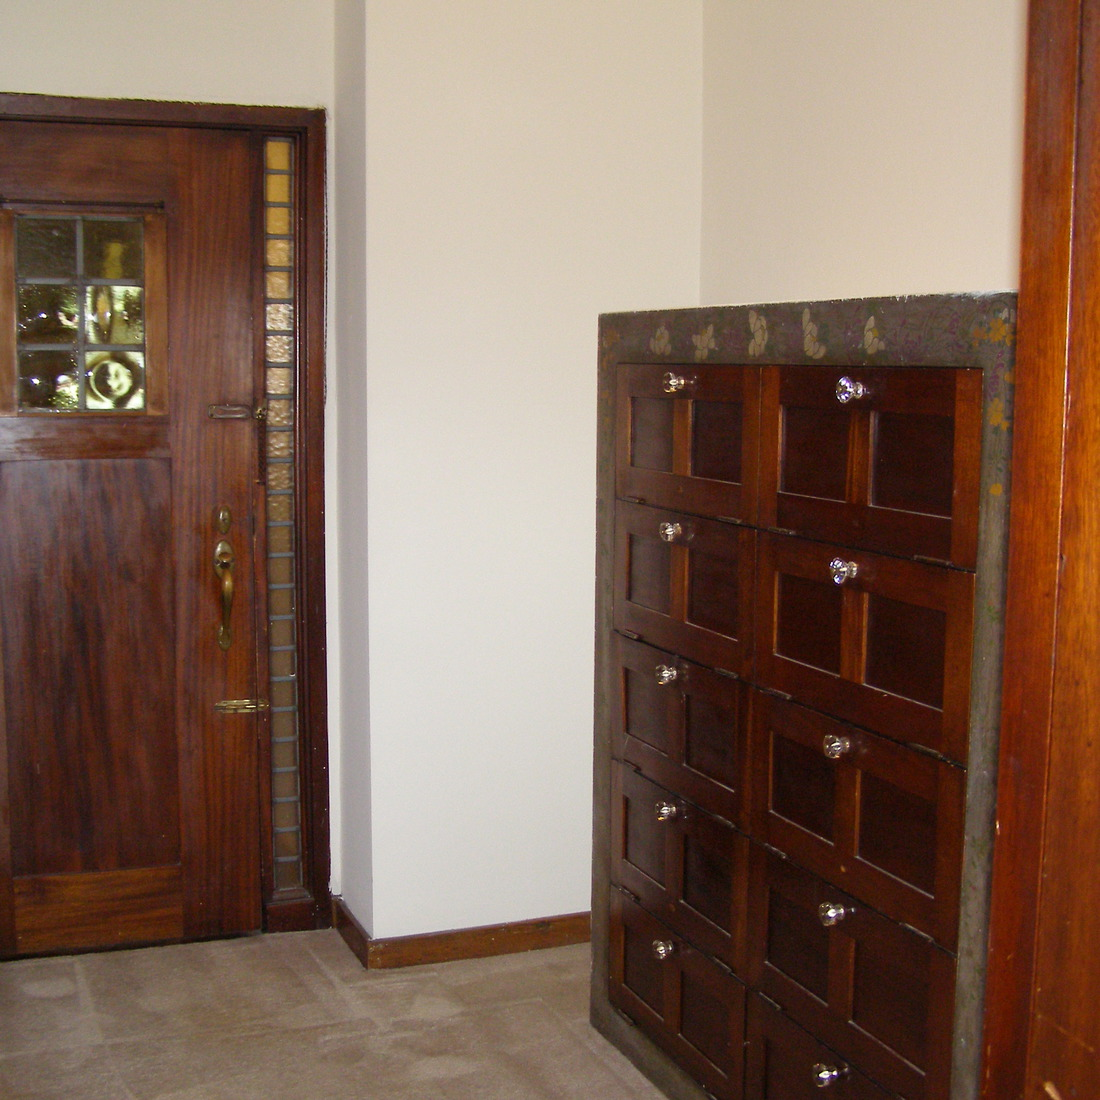 interior of 342 S. Highland Ave, Apt. 13B 2